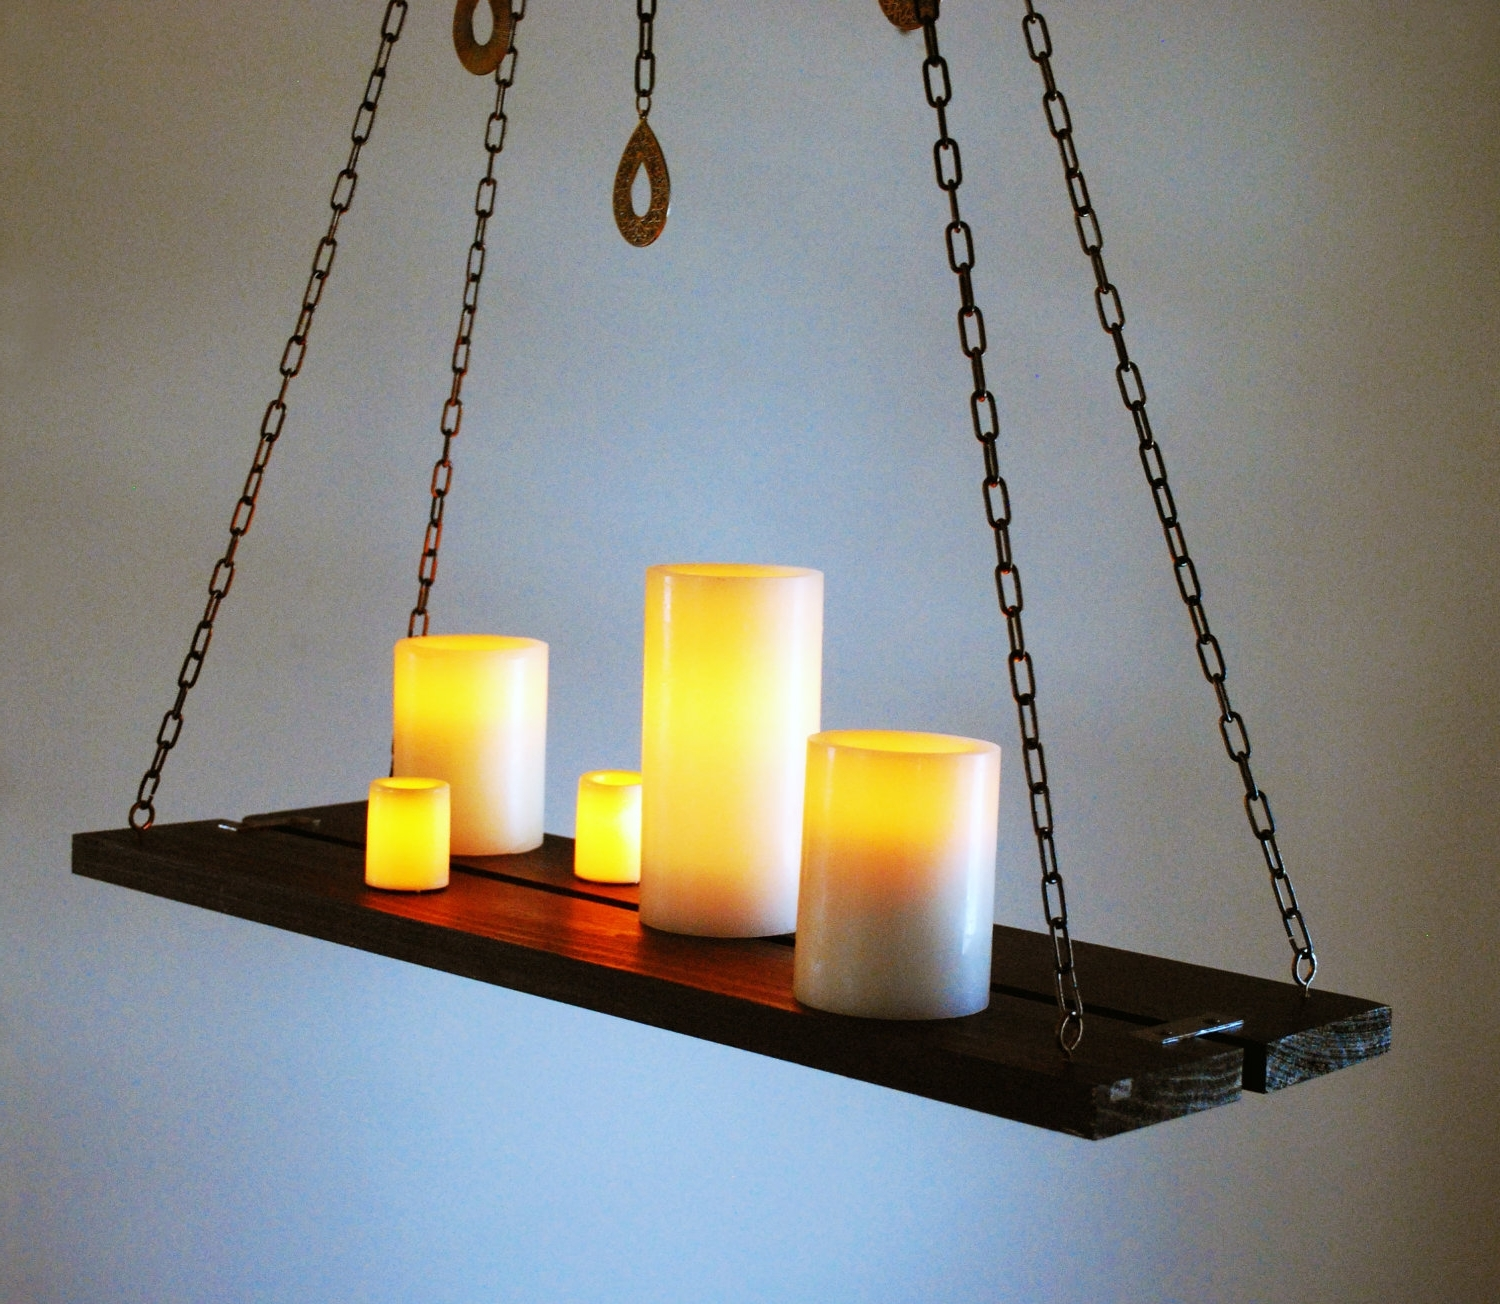 2018 Bedroom : Elegant Hanging Candle Chandeliers For Great Home Lighting Within Hanging Candle Chandeliers (View 1 of 15)